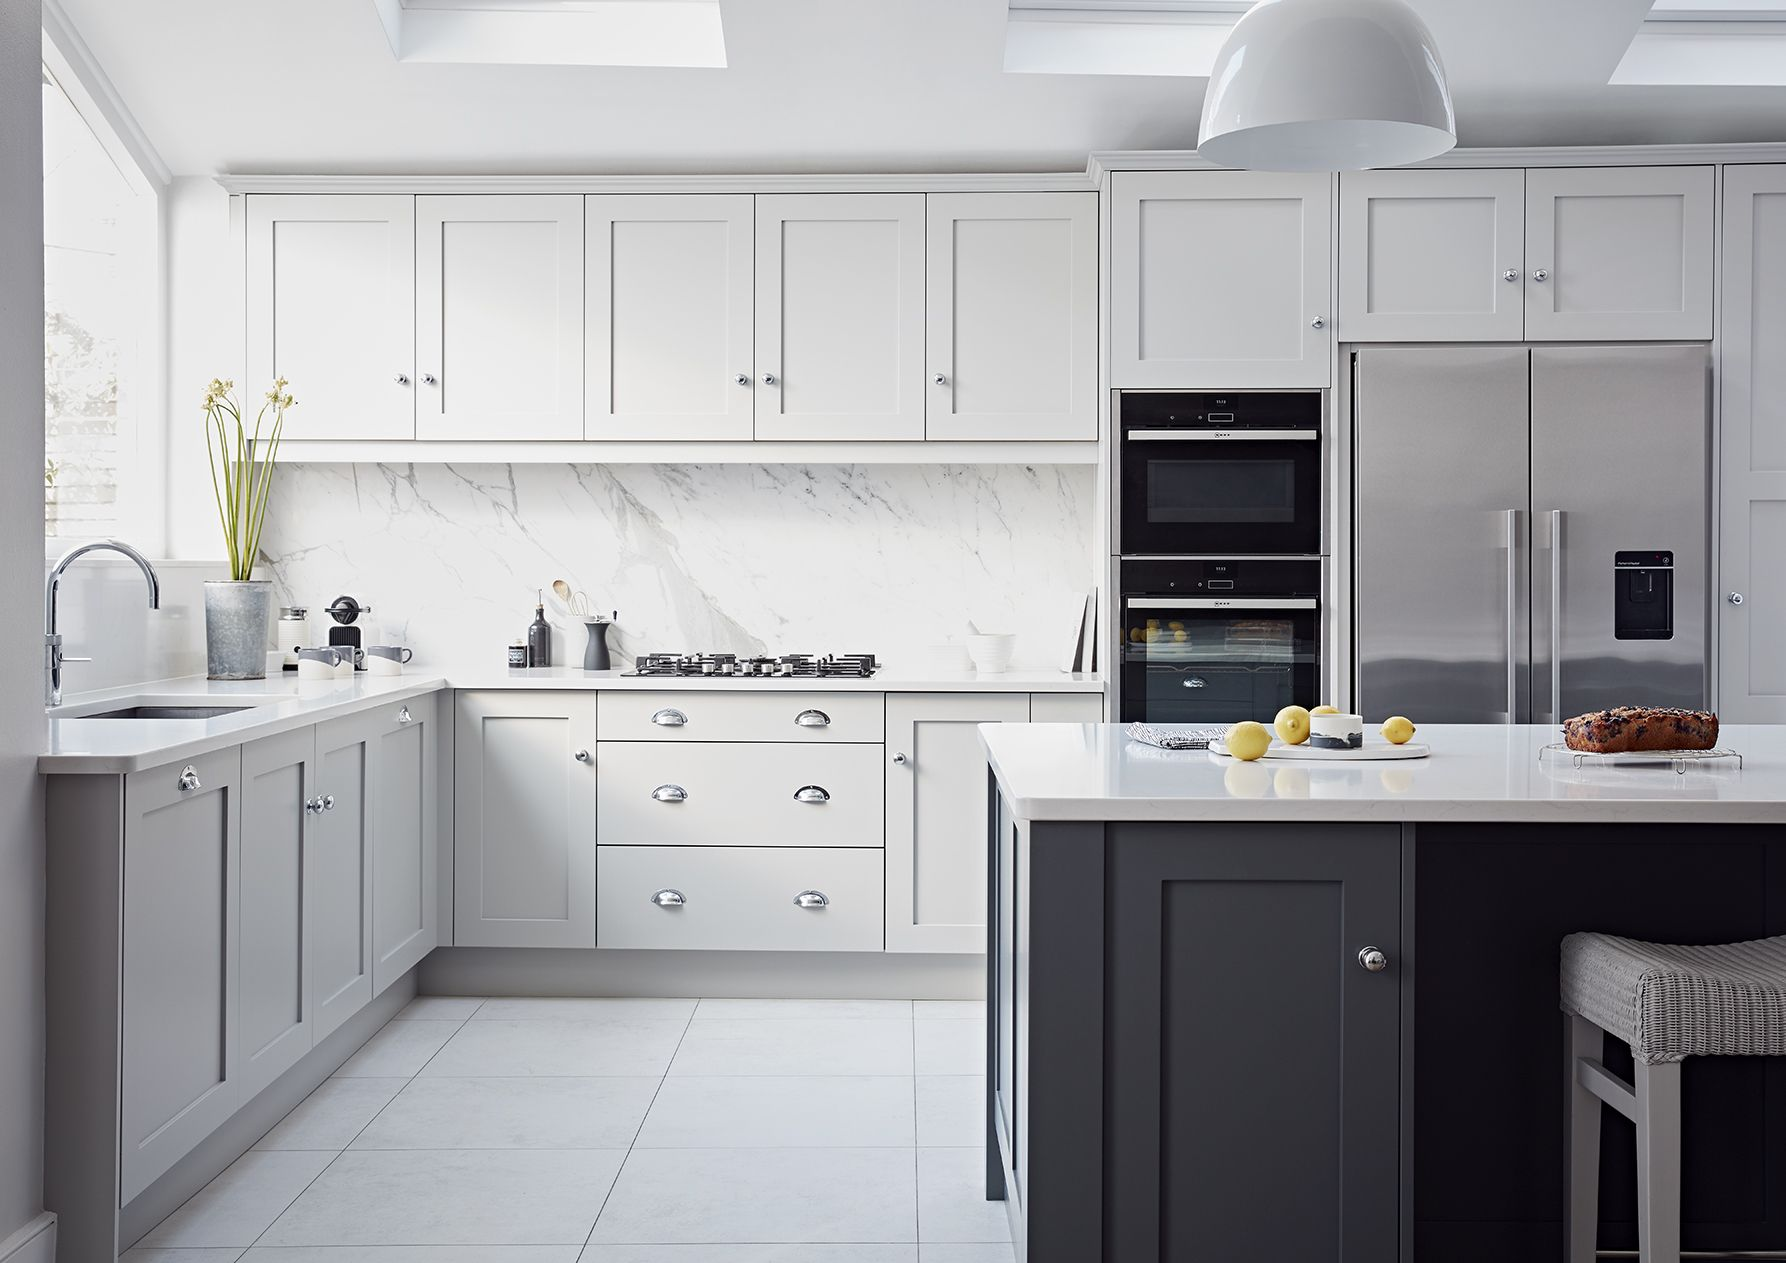 Timeless Original Shaker kitchen by John Lewis of Hungerford. A ...